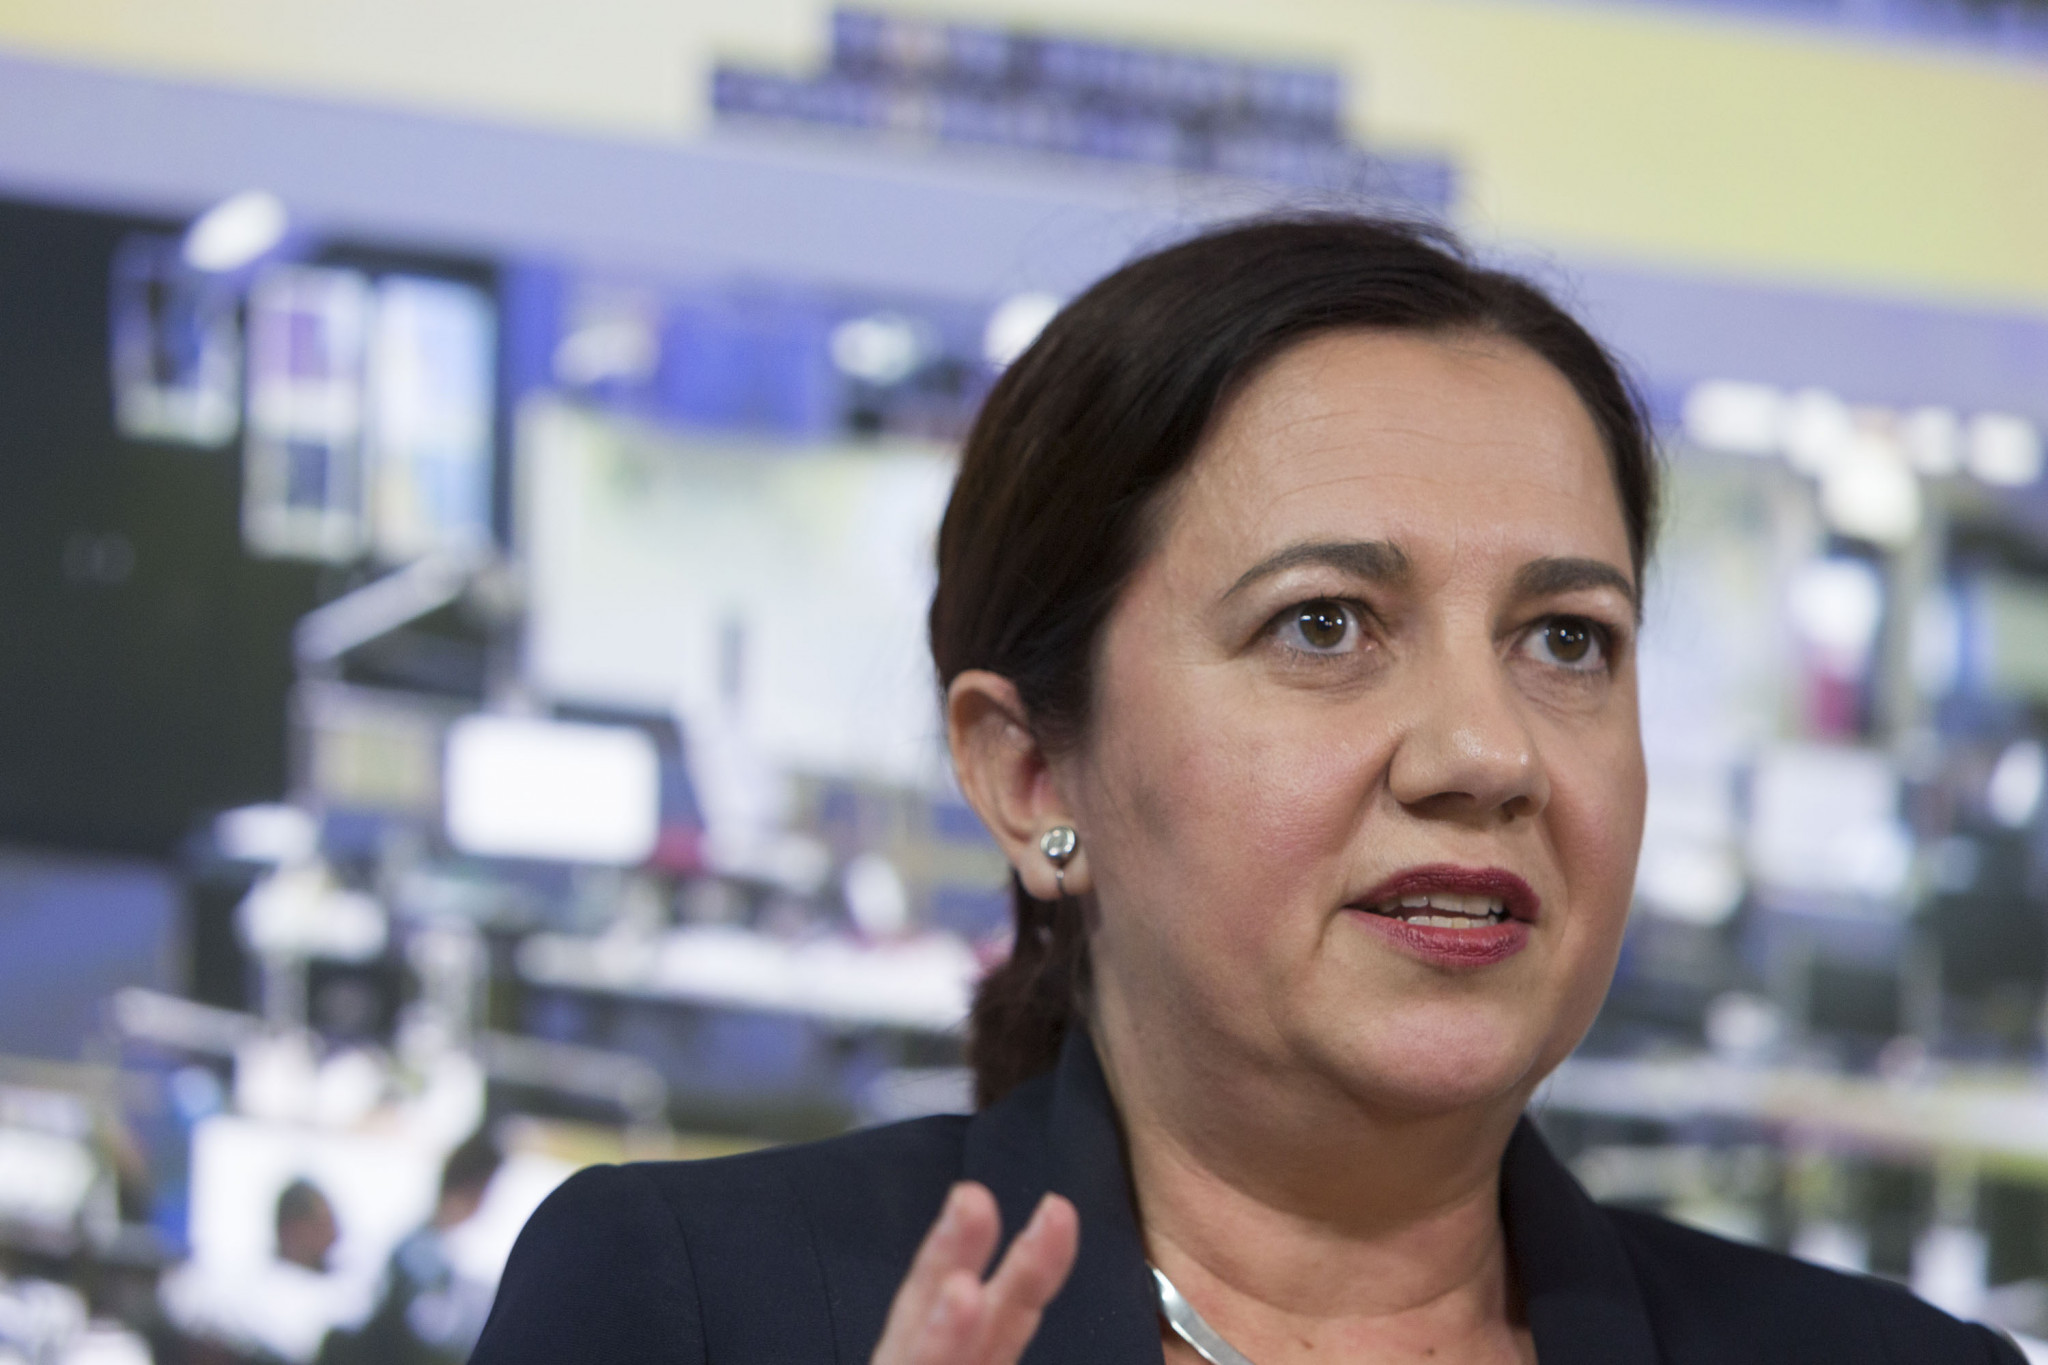 Queensland Premier Annastacia Palaszczuk has said the donations are part of the Gold Coast 2018 legacy programme ©Getty Images